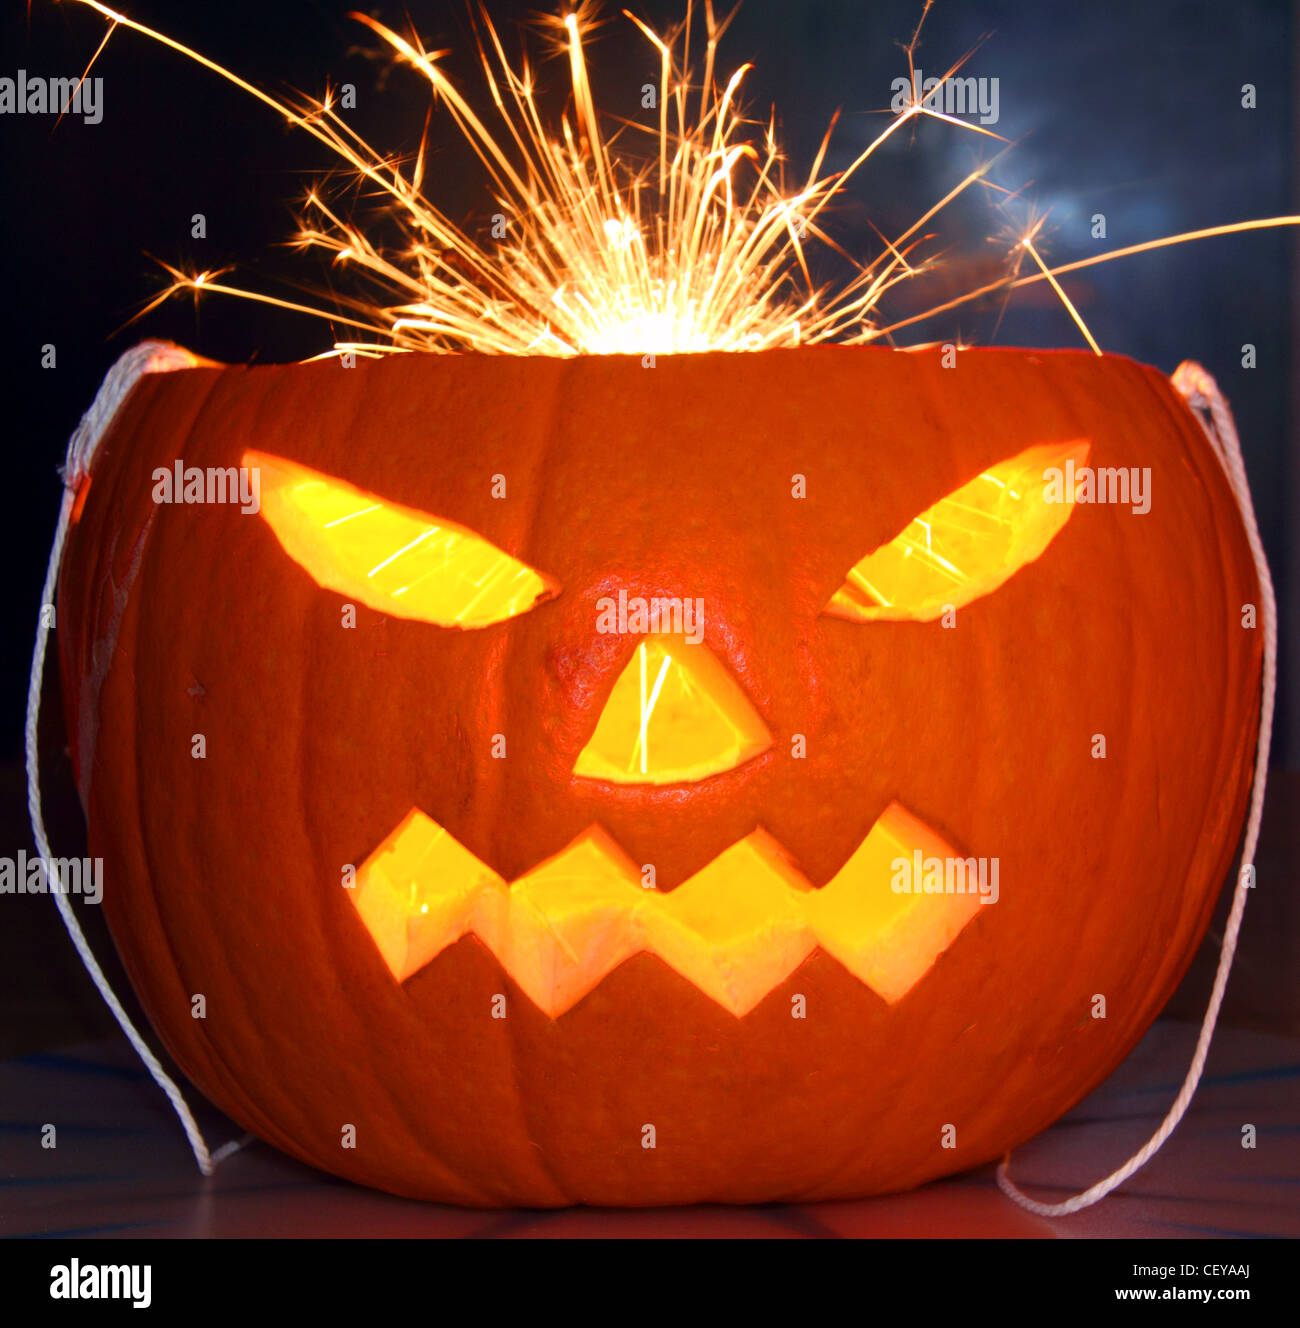 Orange,Halloween,Pumpkin,with,sparkler,for,hair,gotonysmith,carved,face,eyes,nose,mouth,pumpkin,all,hallows,allhalows,allhallows,carviing,ideas,decorating,Punkin,Attractive,craft,jack-o'-lantern,jack-o-lantern,jack-o,lantern,jacko,carving ideas,Pumpkin Carving Ideas,ignis,fatuus,or,will-o'-the-wisp,in,English,folklore,used,especially,in,East,Anglia,firework,sparkling,gotonysmith,Buy Pictures of,Buy Images Of